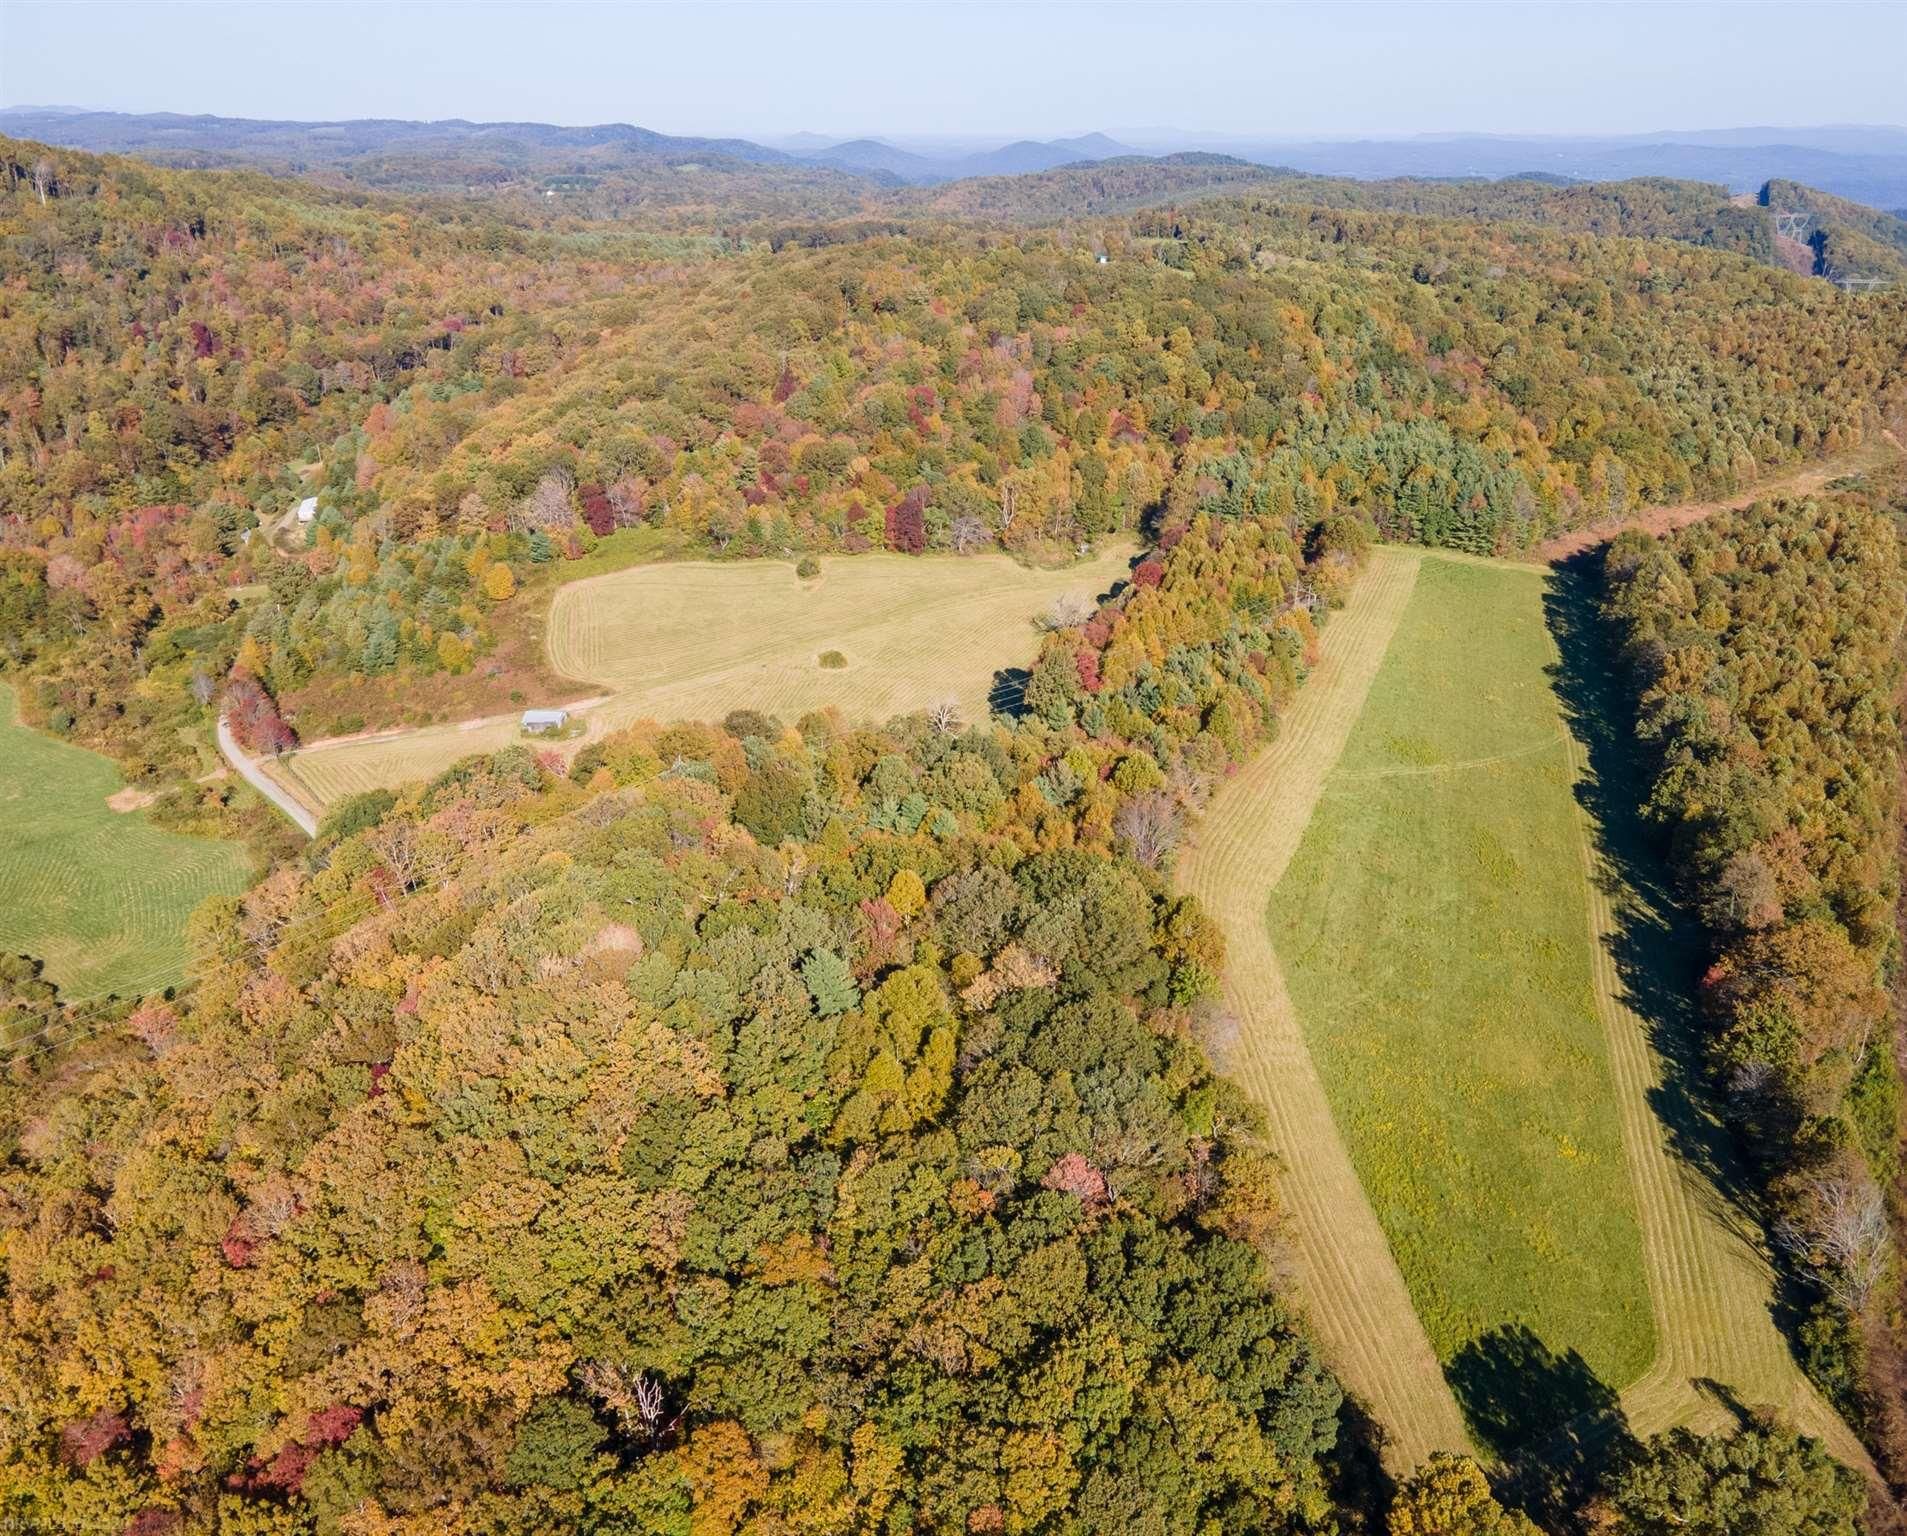 50 acres of open pastures and forest 2 minutes from the Blue Ridge Parkway. This beautiful property is tucked away on a quiet country road just 15 minutes from the town of Floyd.  Build your dream home or a secluded vacation retreat.  The previous owners had an off grid cabin.  There perennial herb garden with fruit trees where the cabin once stood.   This property has great potential for livestock or a horse farm with nearly 1500' of road frontage on a state maintained road and board fencing along the pasture at the entrance.  The large rolling pasture at the front of the property has a big restored barn and a spring fed drink box for livestock.  Both pastures have been in hay production for the past several years.